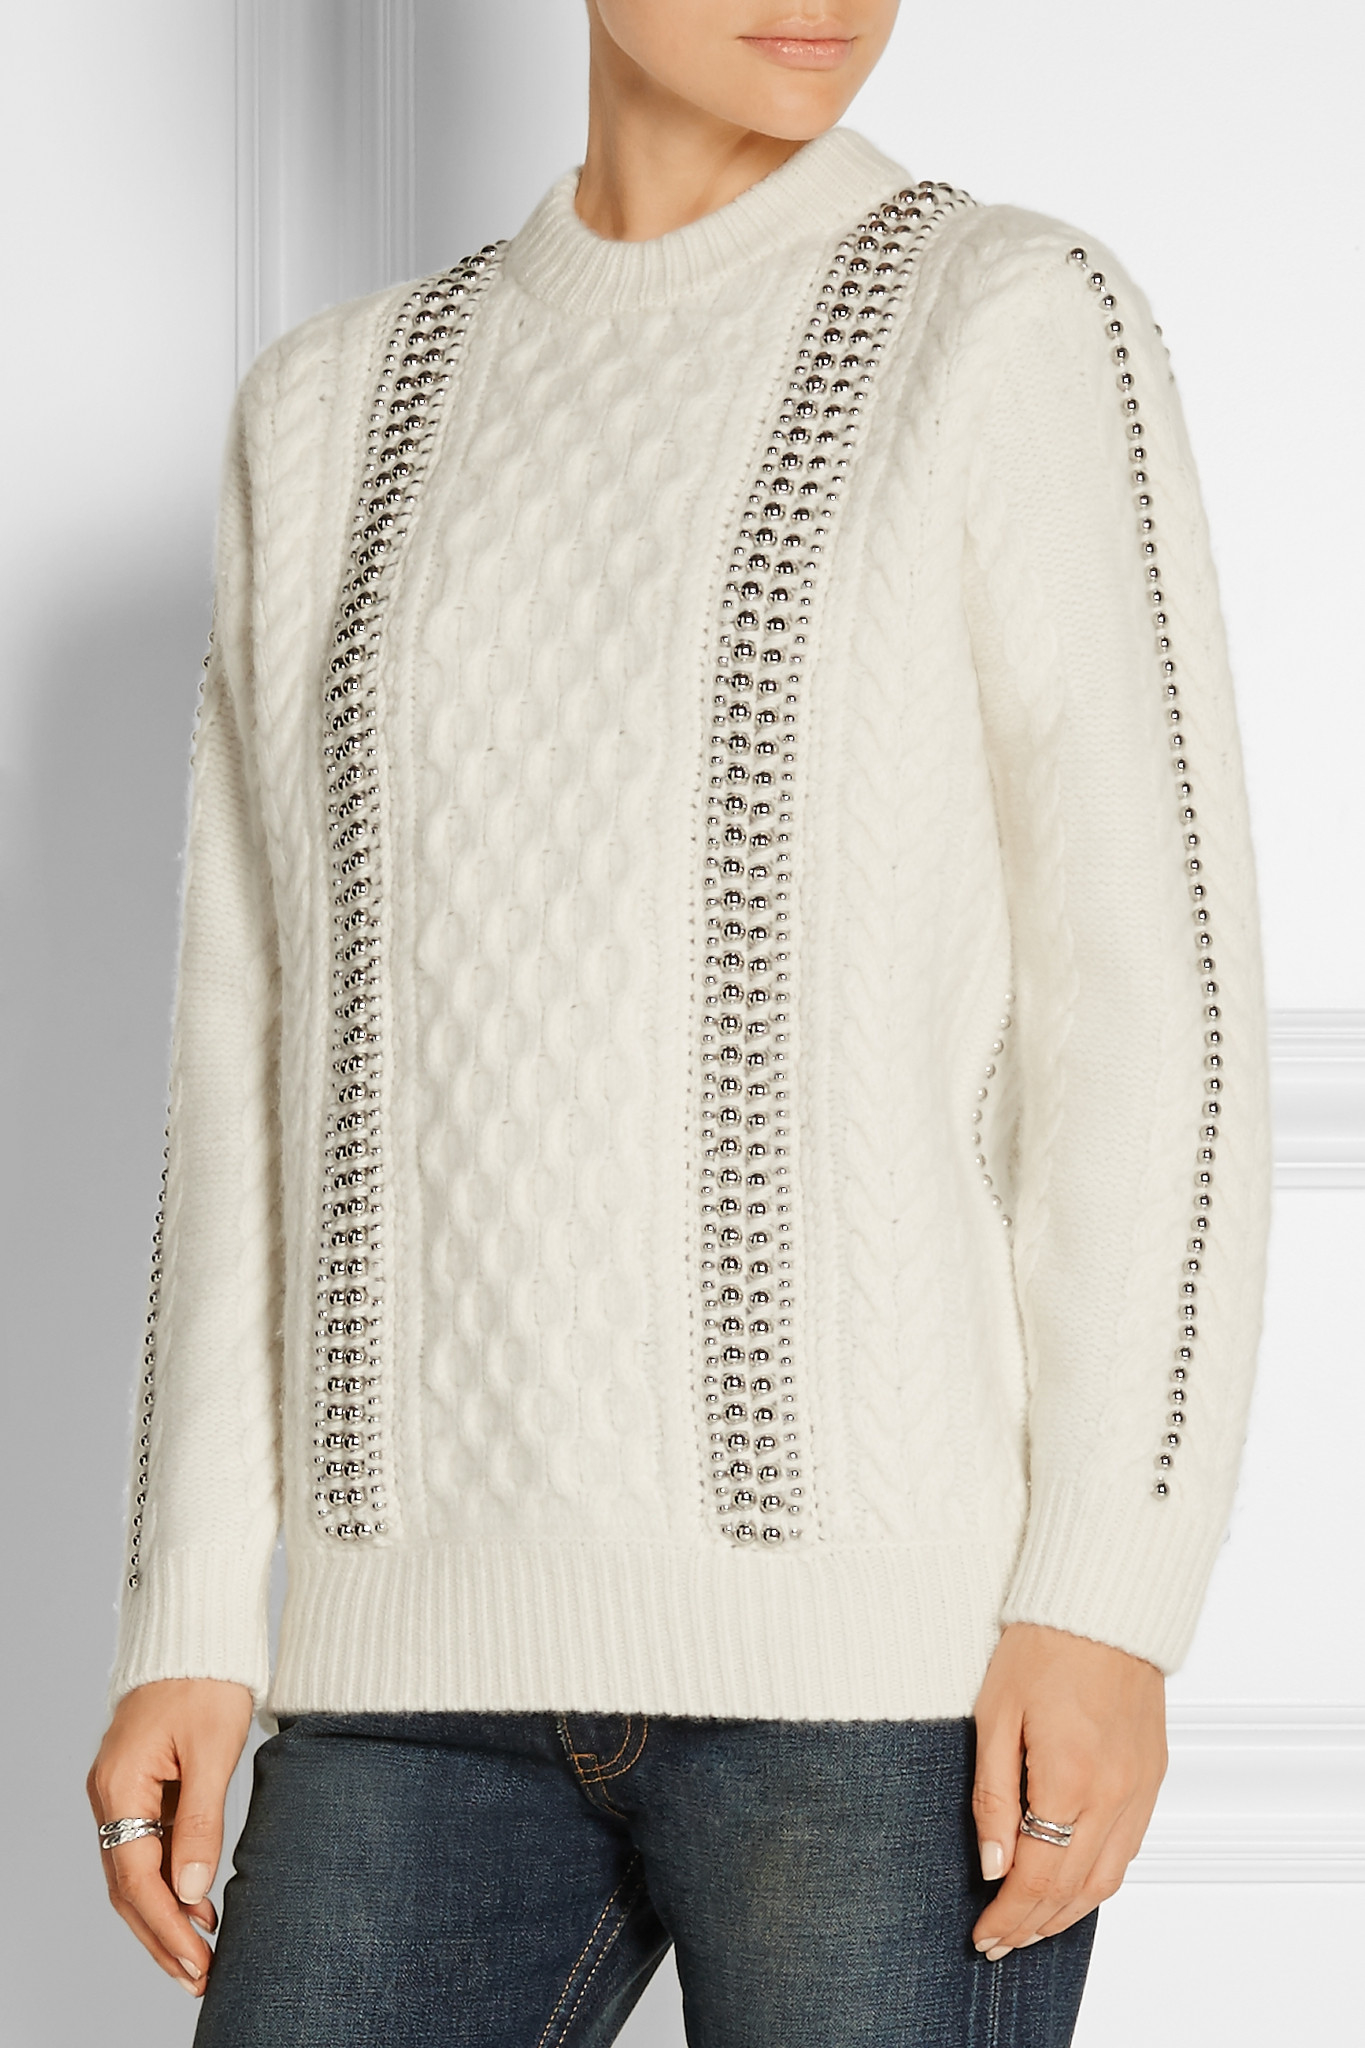 Alexander wang Embellished Cable-knit Wool Sweater in White | Lyst